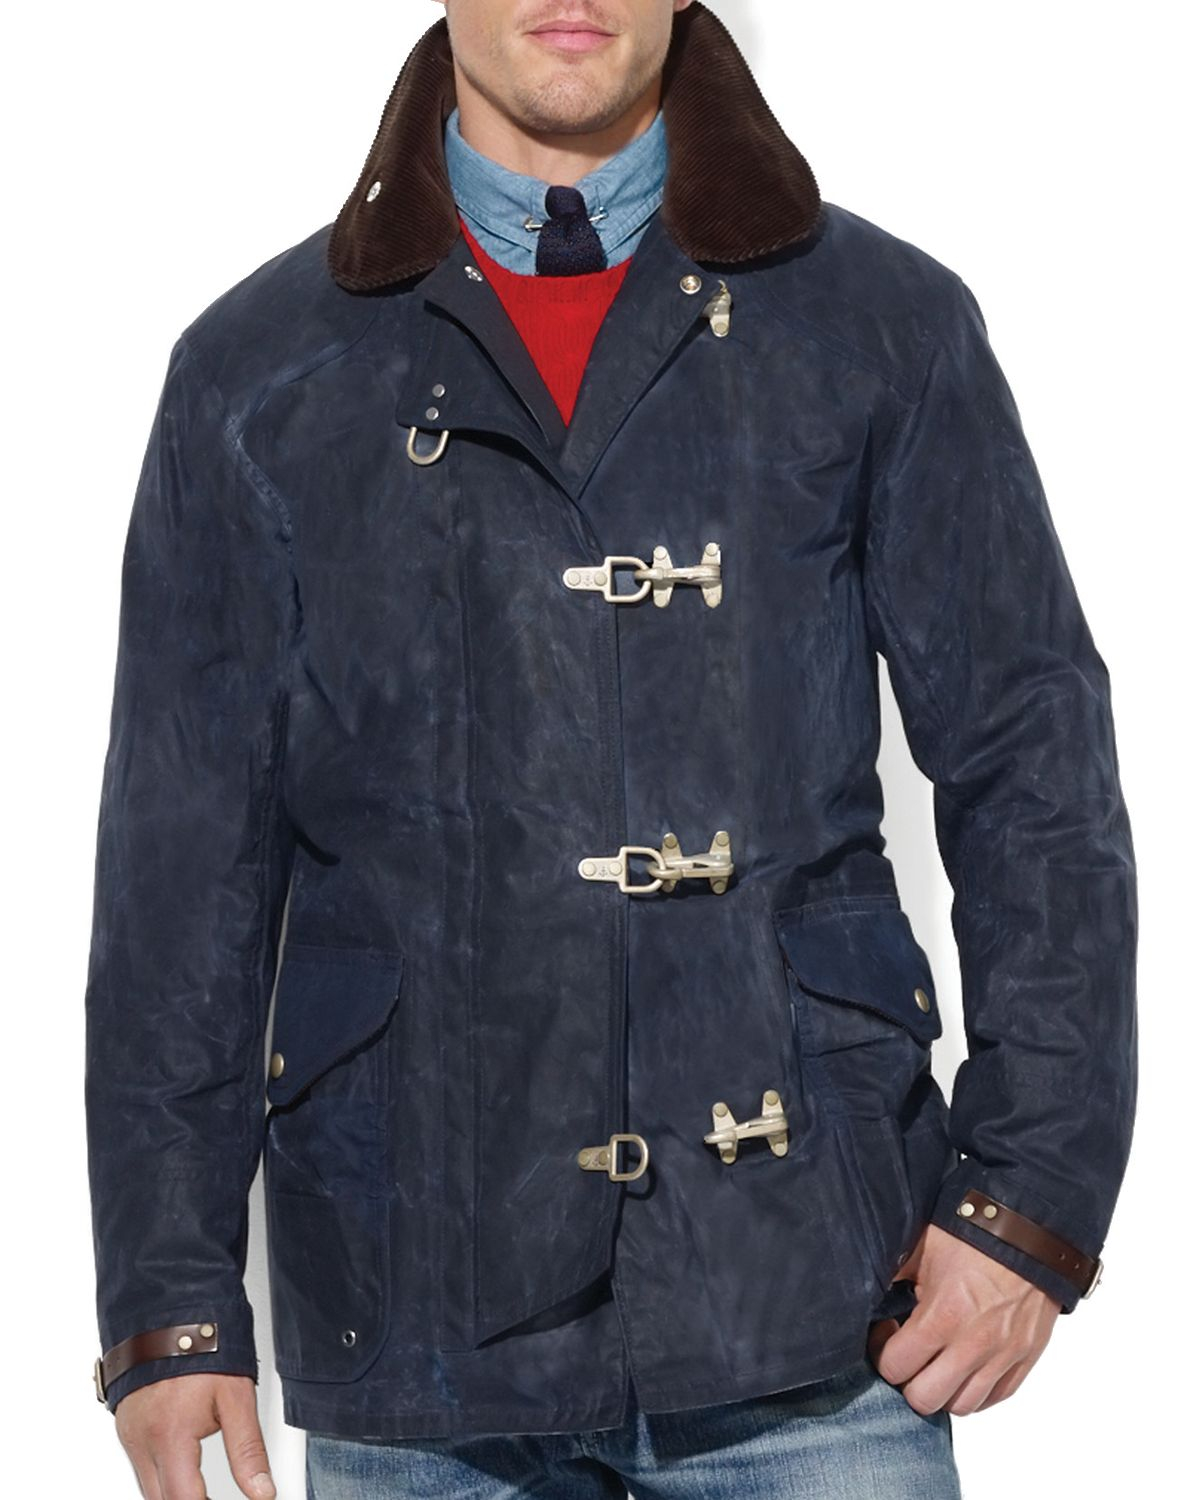 Ralph Lauren Polo Oilcloth Fireman S Jacket In Blue For